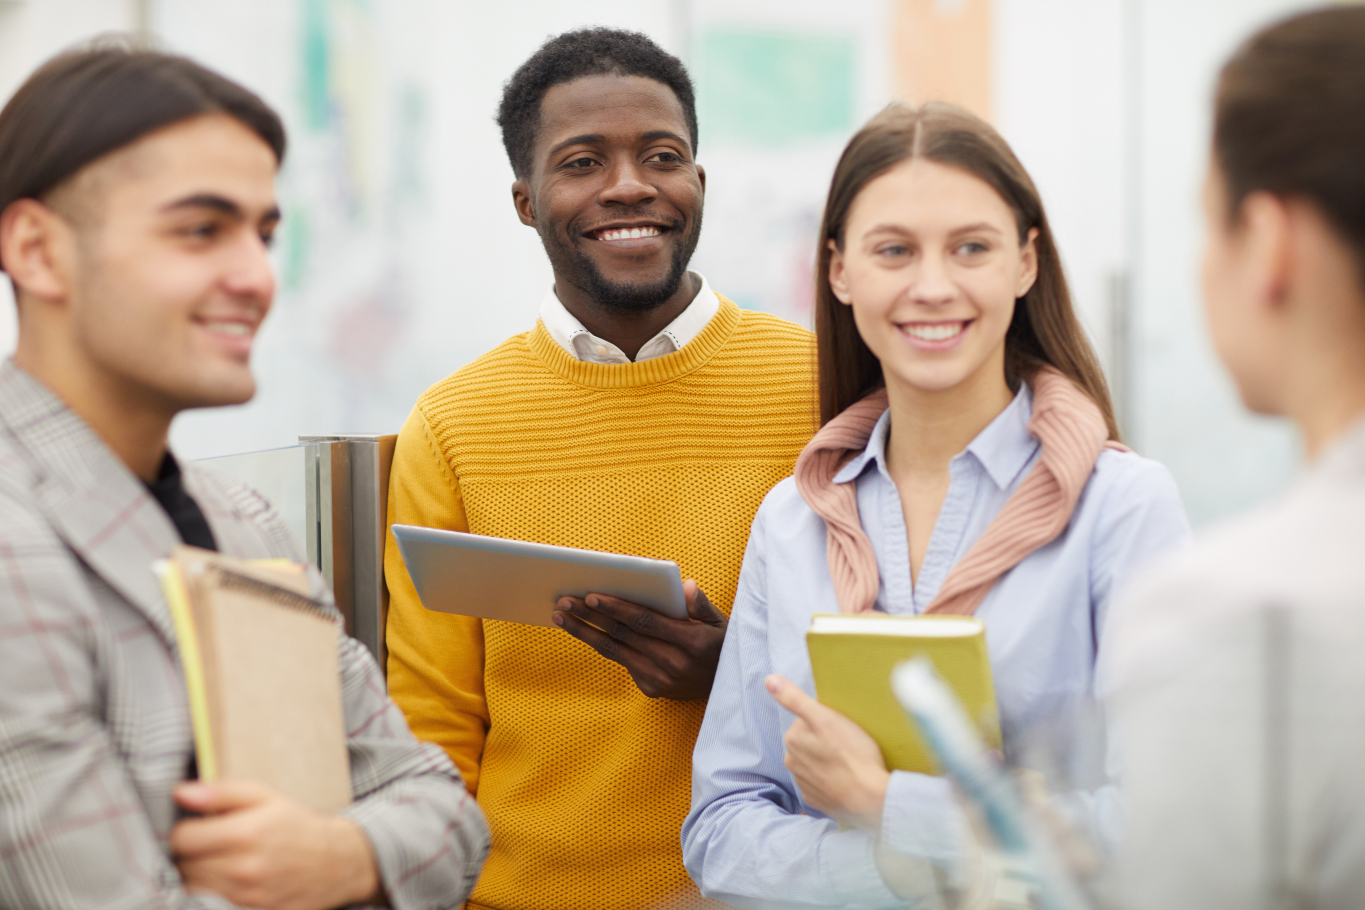 group of people smiling with notebooks and tablets